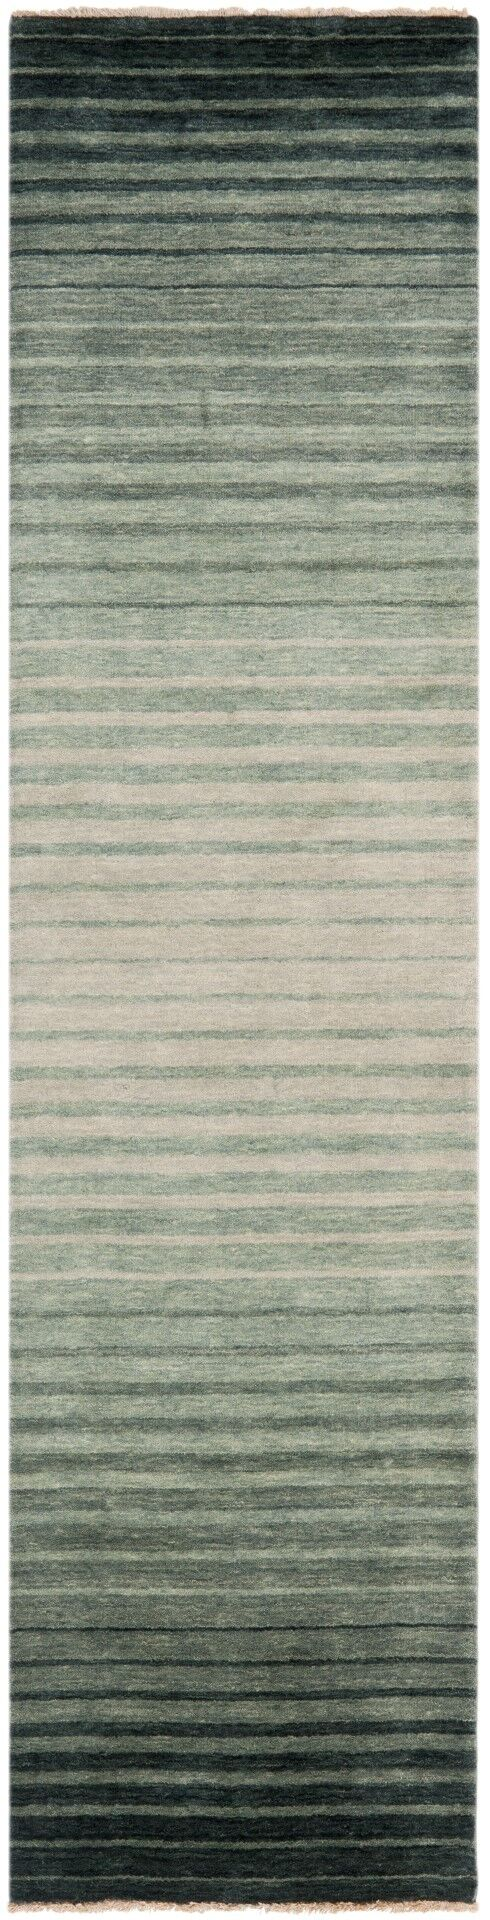 Armstrong Hand-Knotted Blue Area Rug Rug Size: Rectangle 5' x 8'